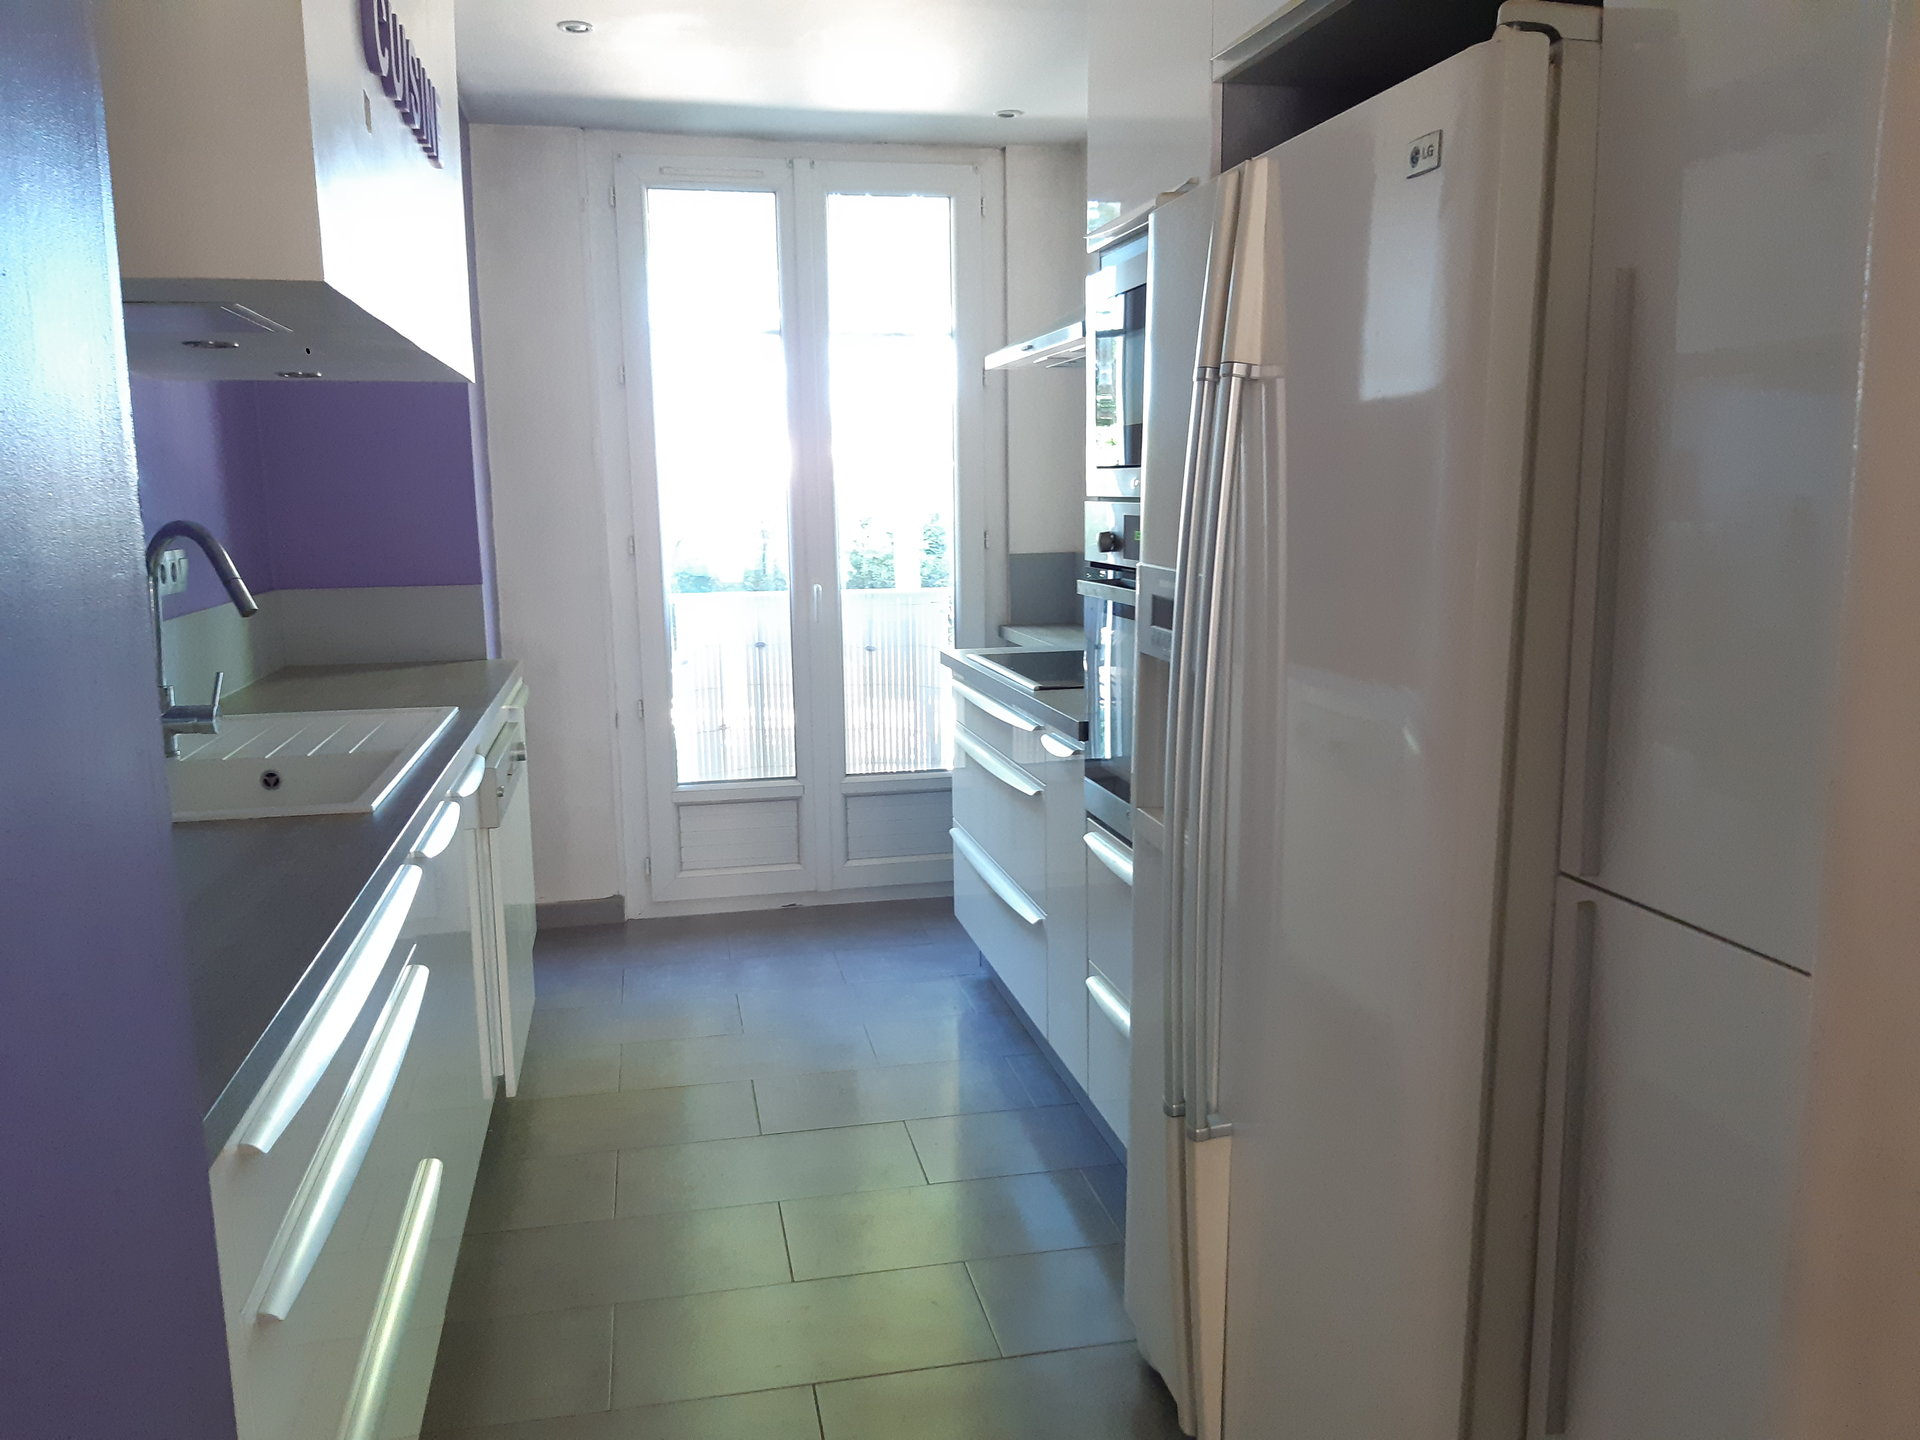 Location Appartement TARASCON Mandat : 1013